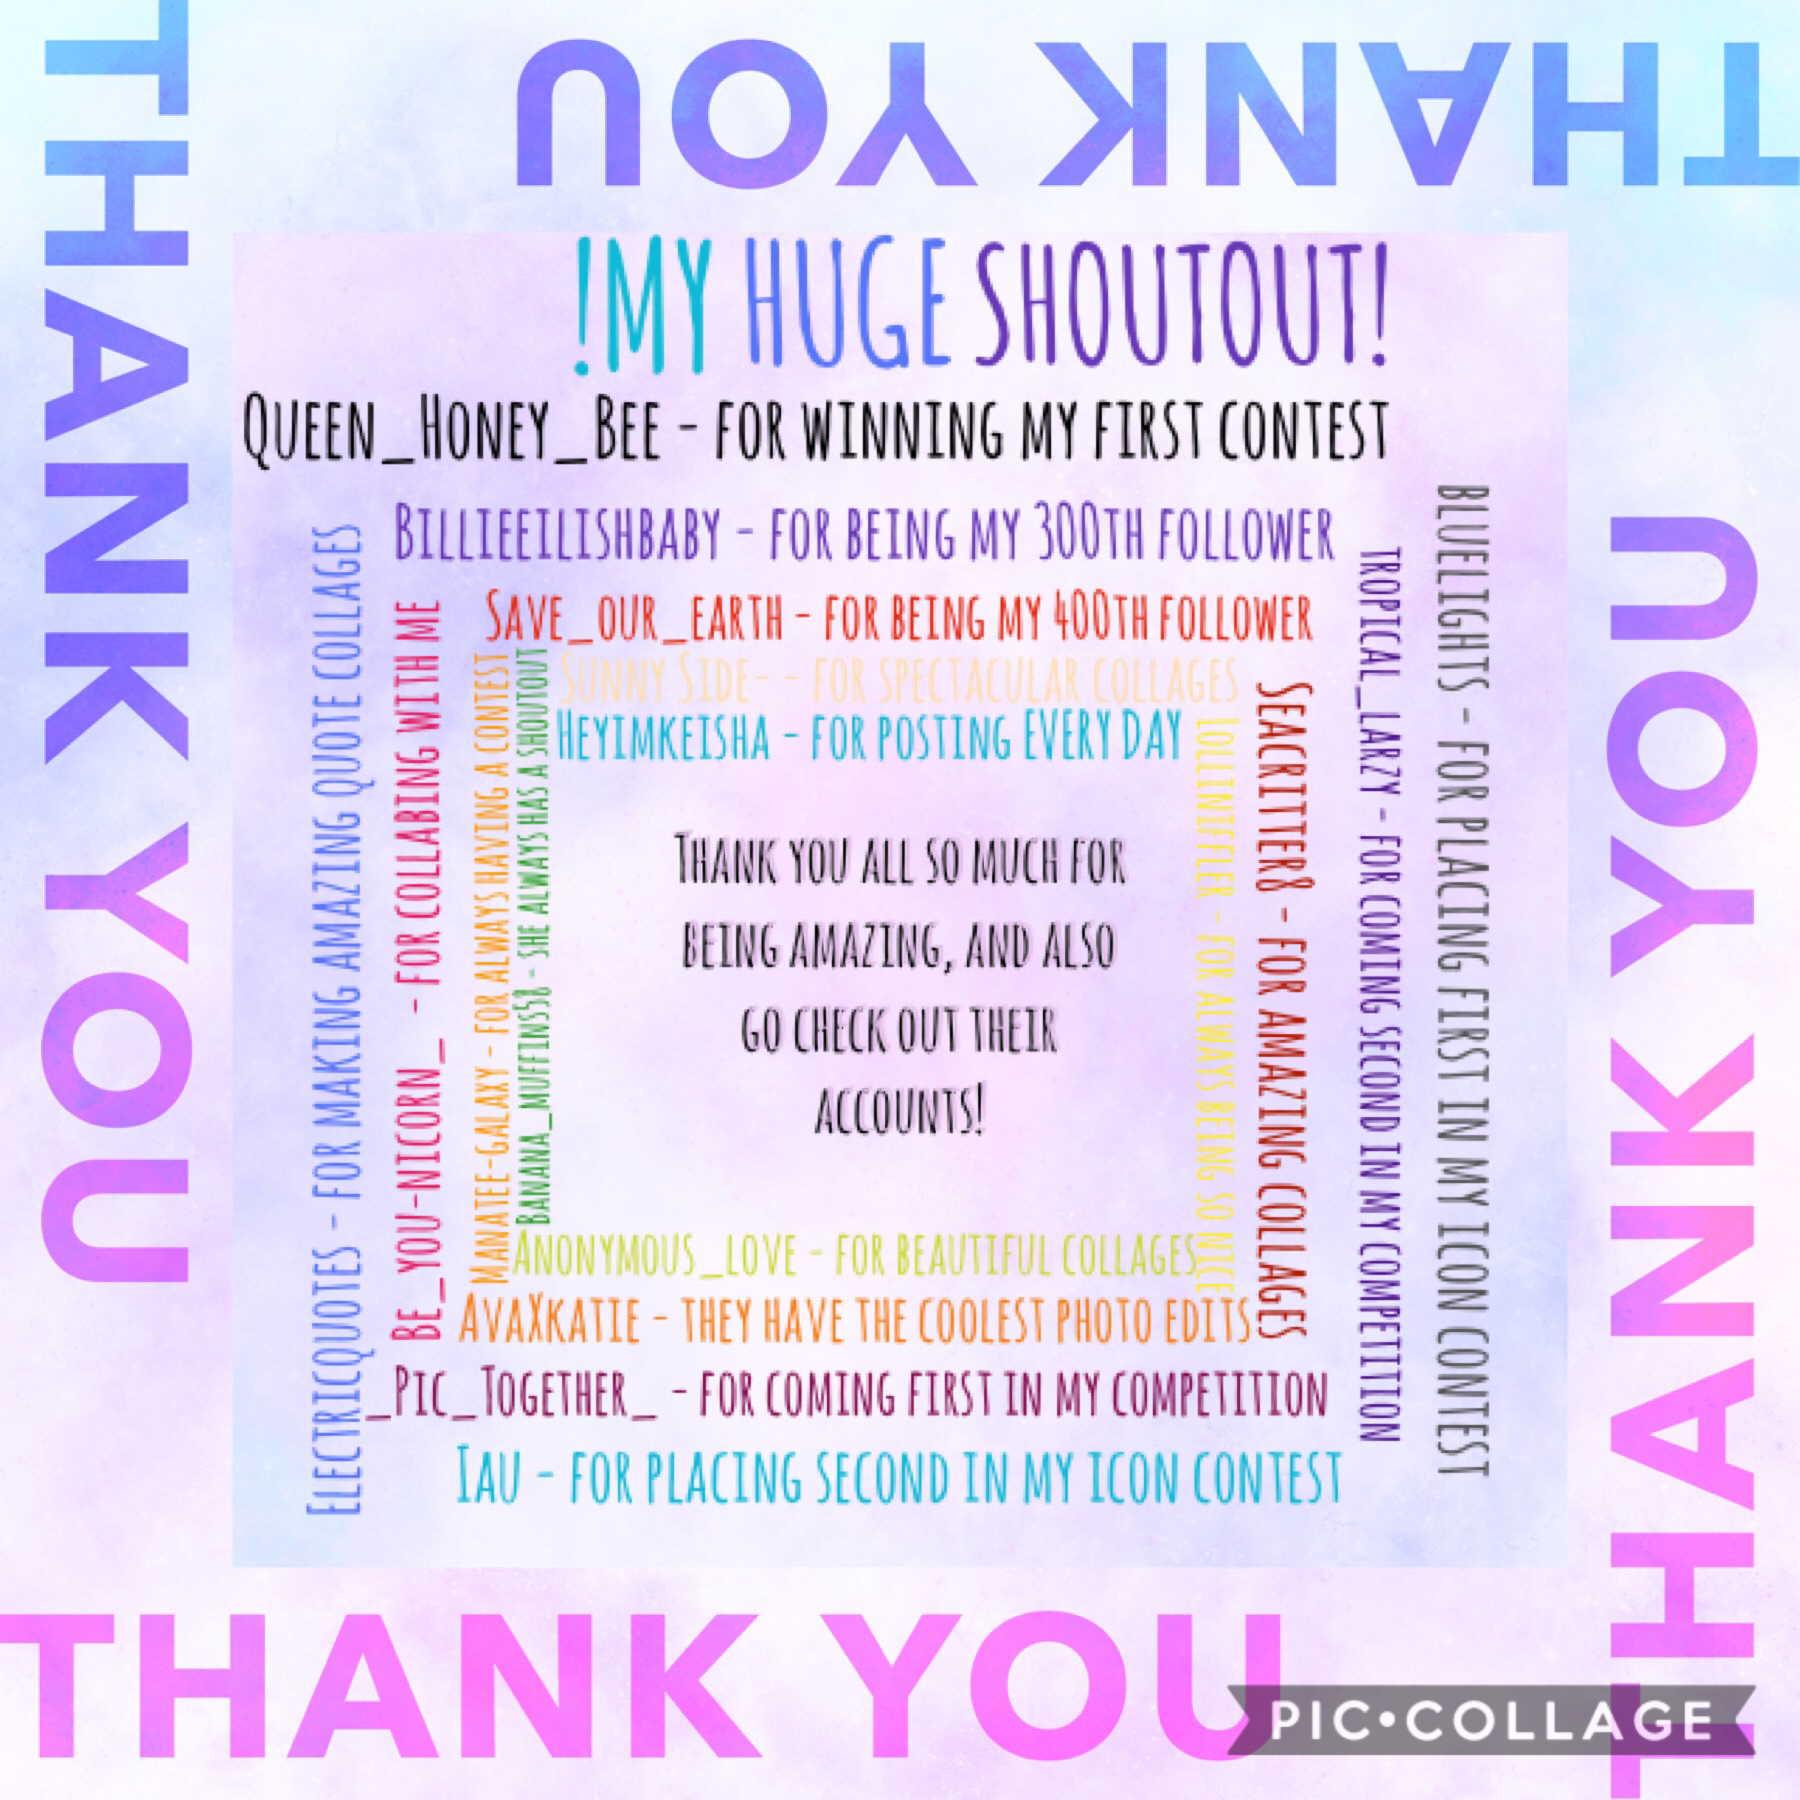 I have been promising this for ages! And here it is! Congratulations to all who got a shout out! If I didn't give you a shout out I hold nothing against you, still love you 💕